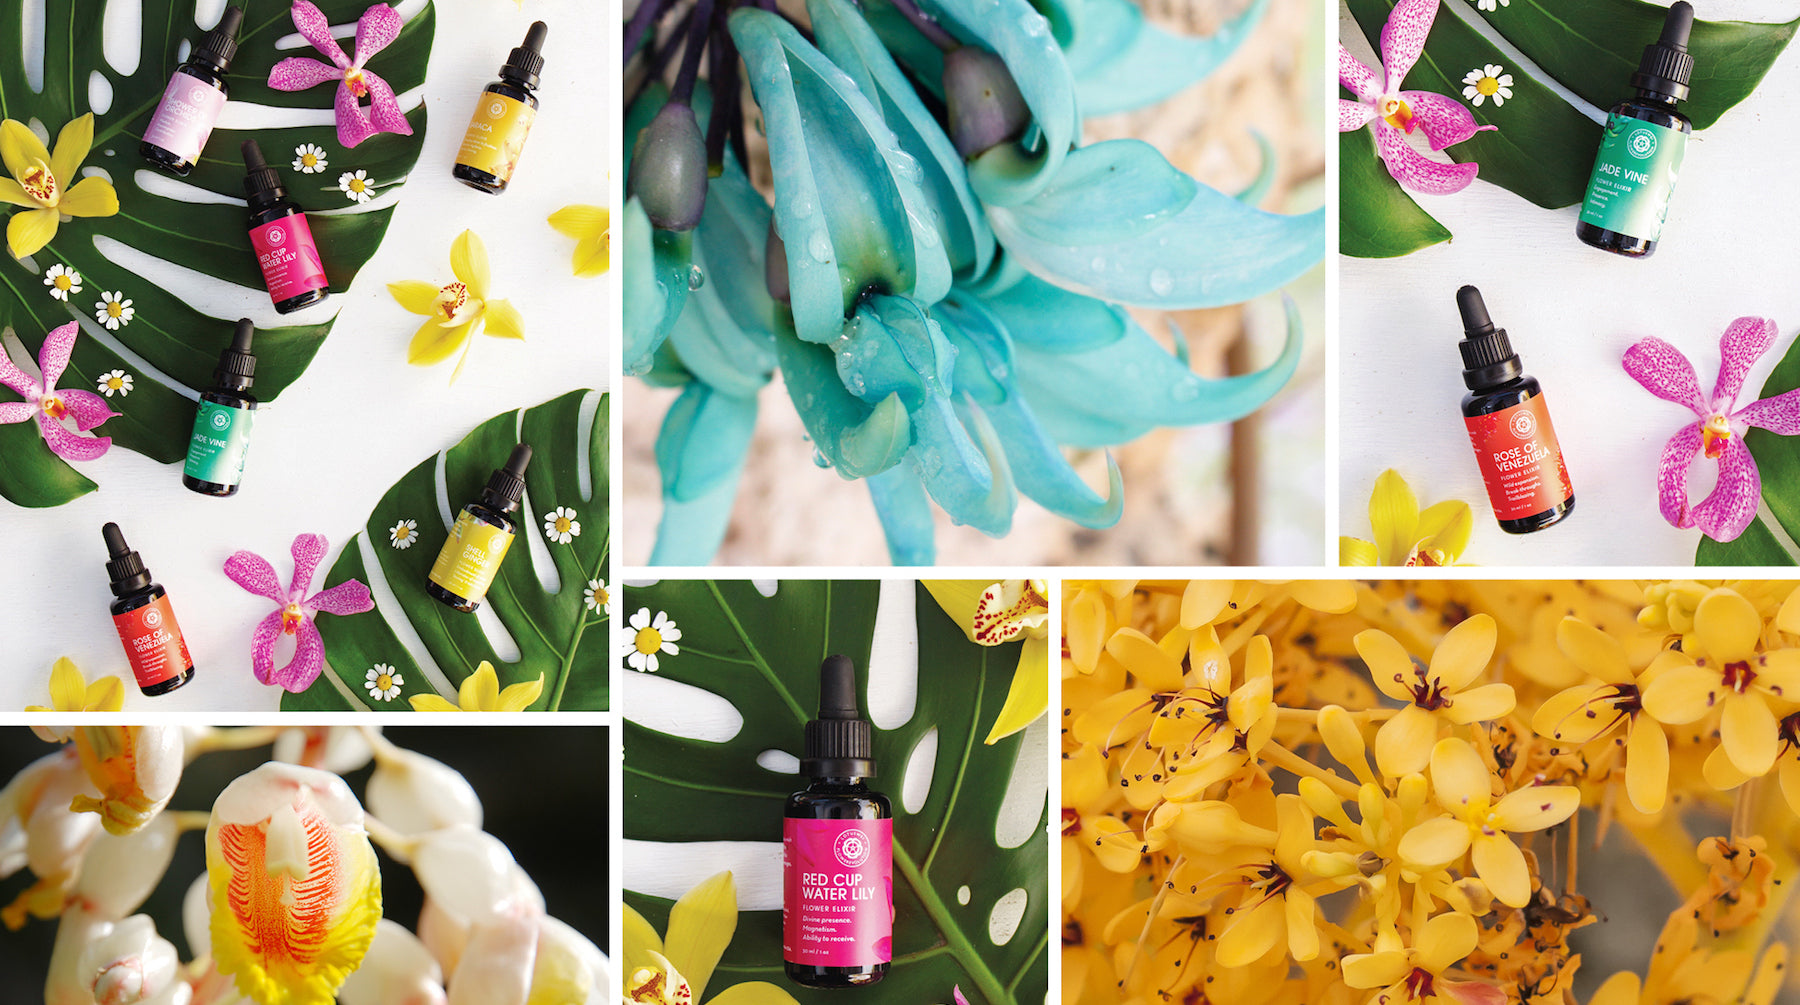 flowerevolution LOTUSWEI flower essences